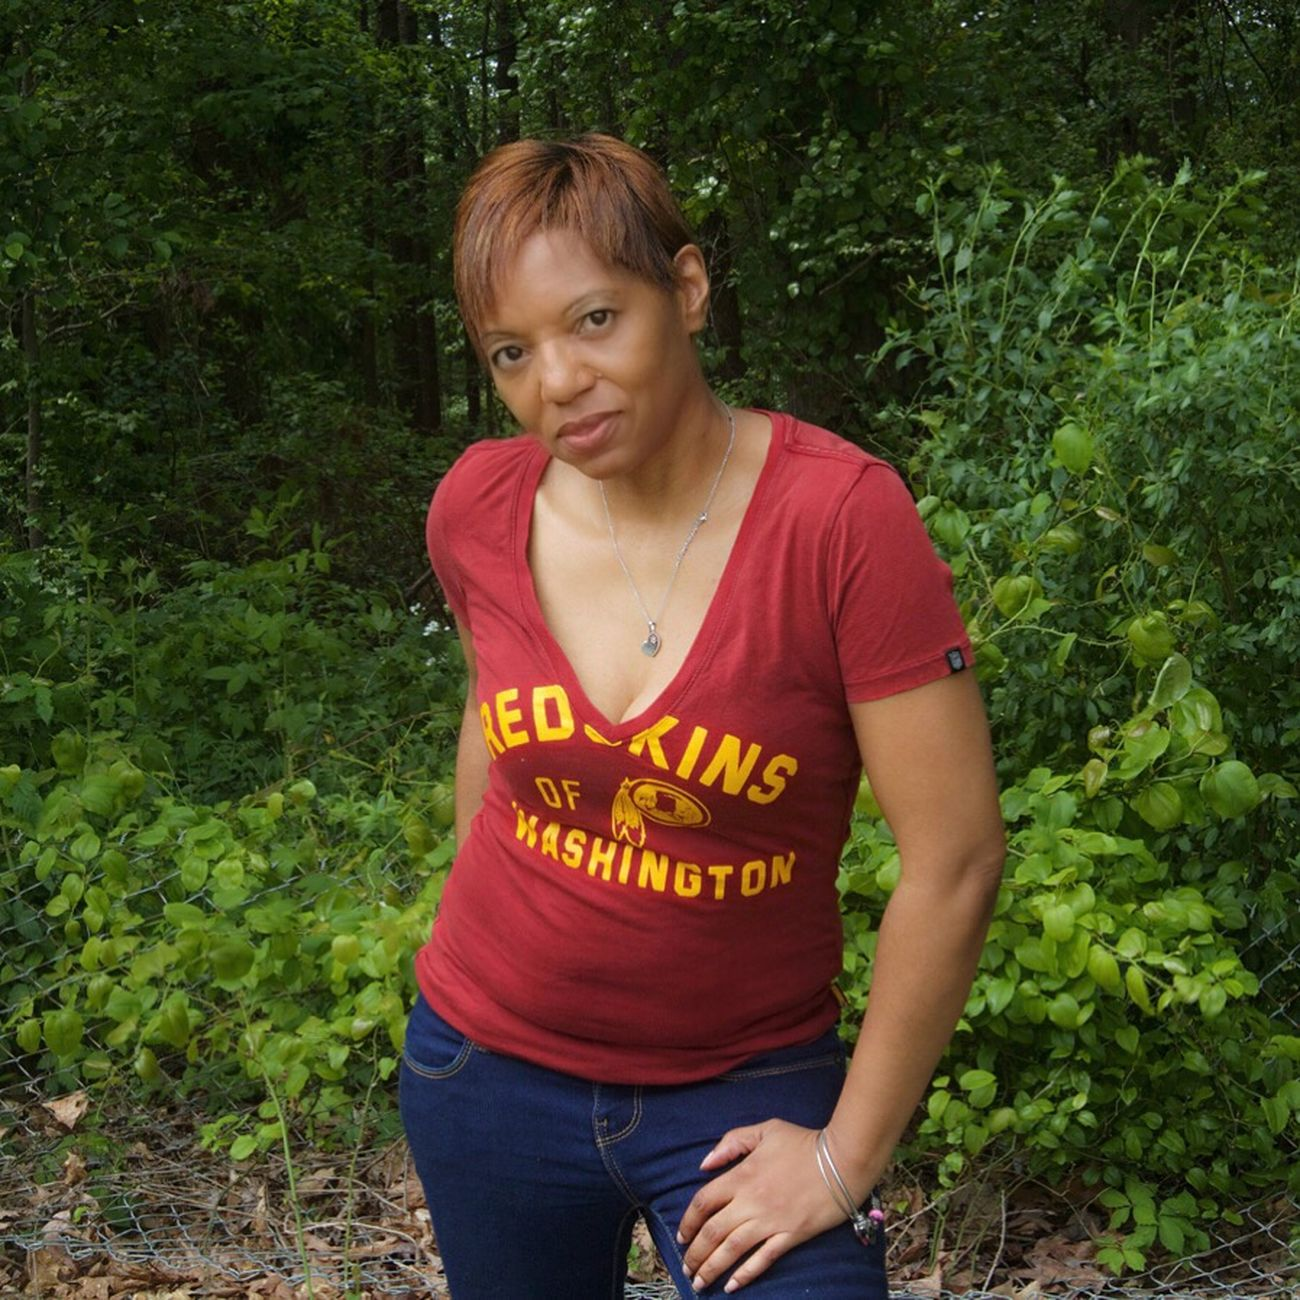 Representing Redskins Washington Redskins  HTTR Redskins All Day Washington NFL Beautiful BlackWoman Blackwomen Pretty Pretty Girl Beautiful Lady Beautiful Ladies Living A Beautiful Life Woman